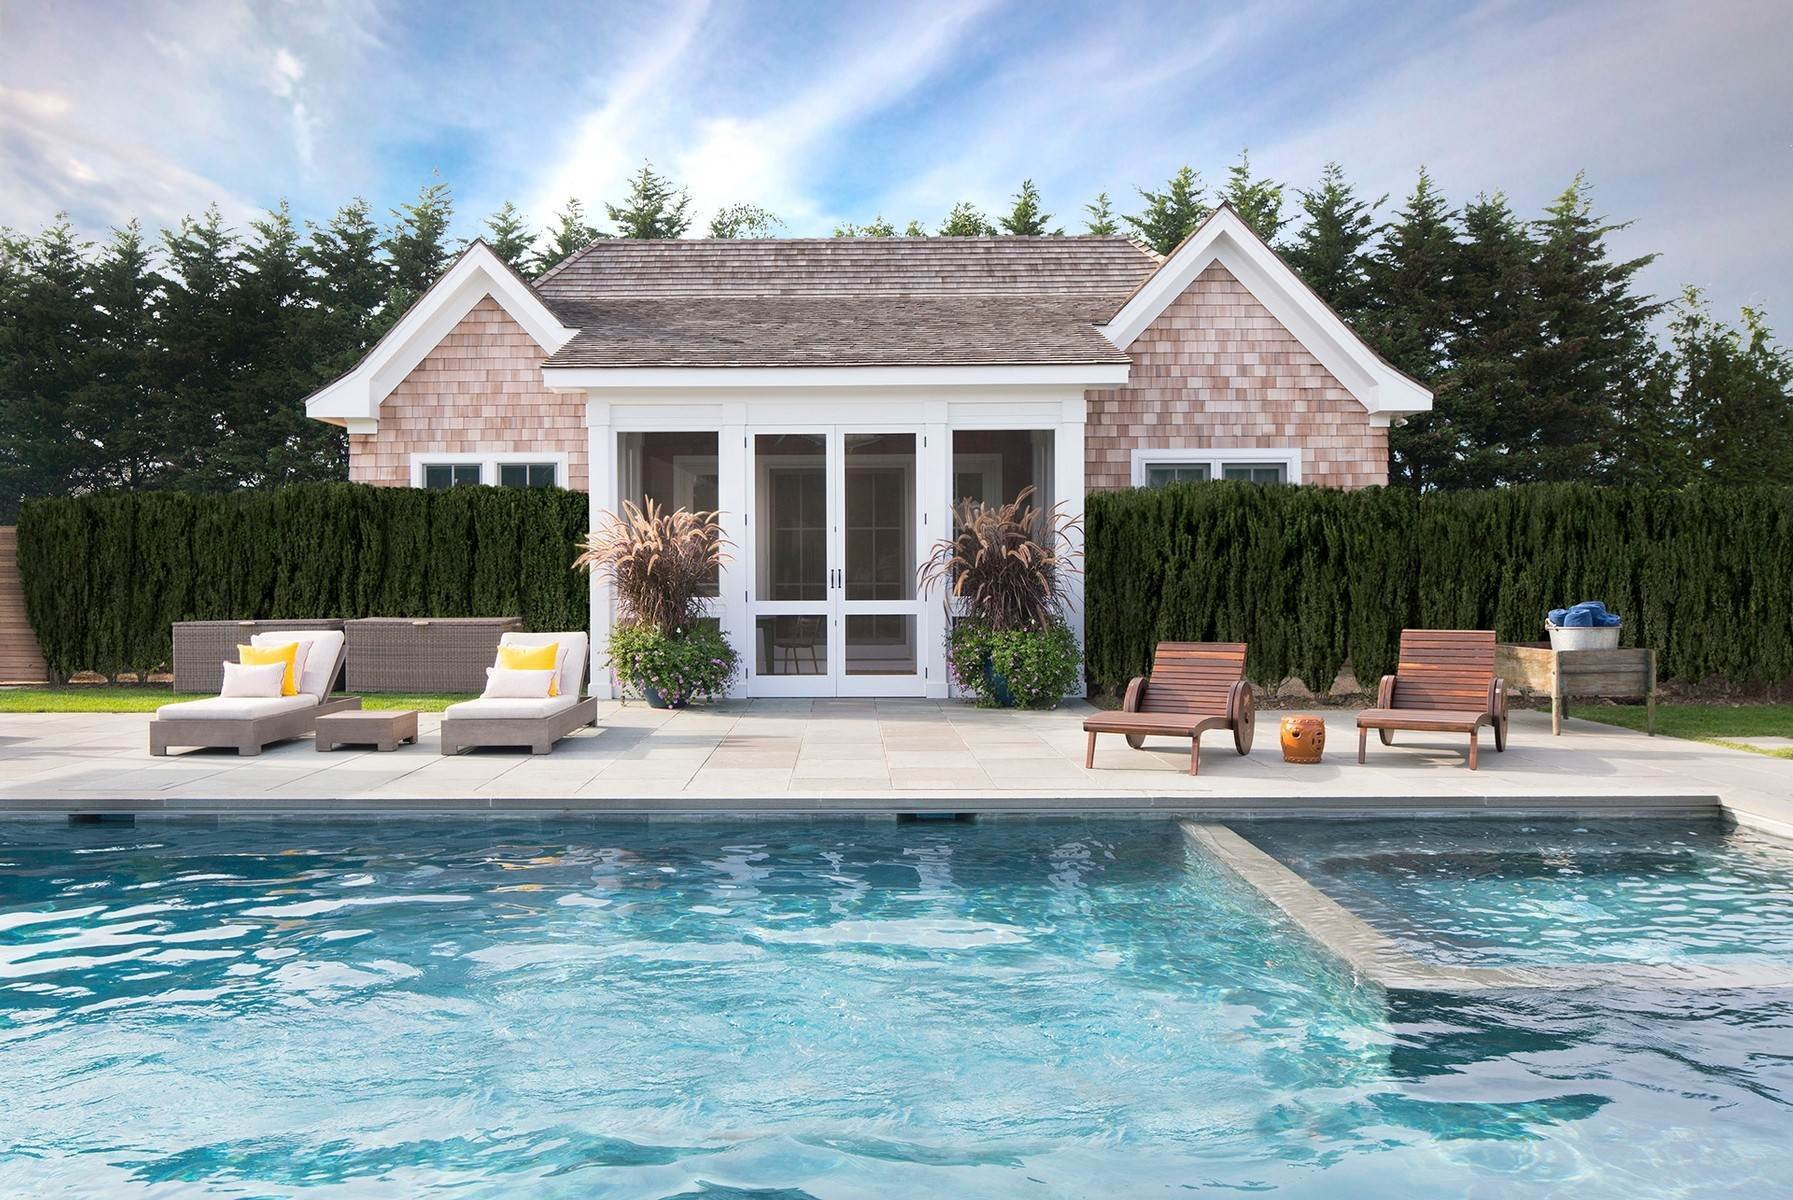 21. Single Family Home at Bridgehampton South Masterpiece 38 West Pond Drive, Bridgehampton, NY 11932